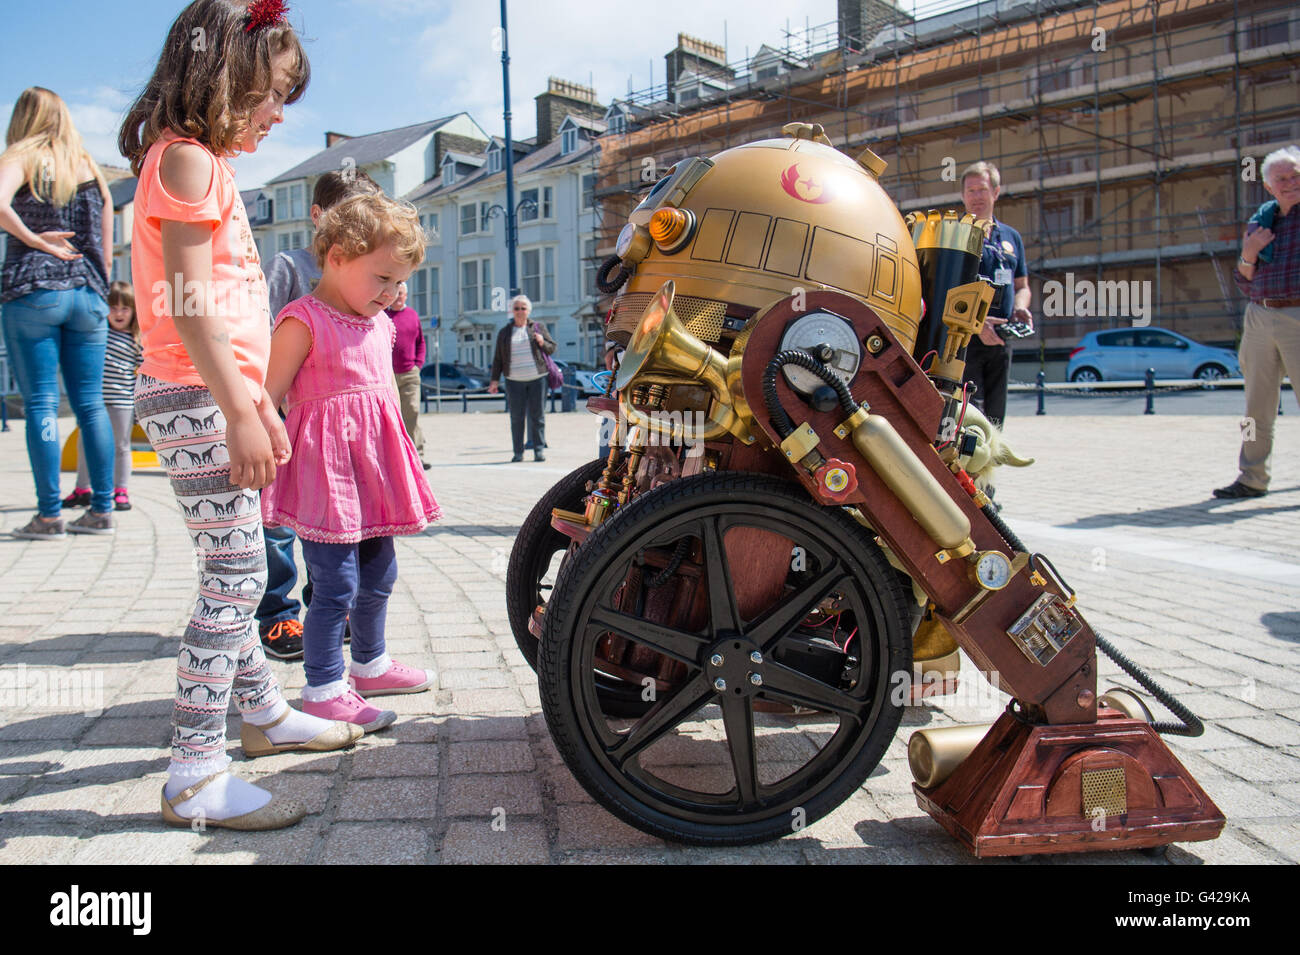 Aberystwyth Wales UK, Saturday 18 June 2016 Children interacting with a 'steam punk RD-D2' replica robot on a bright Stock Photo